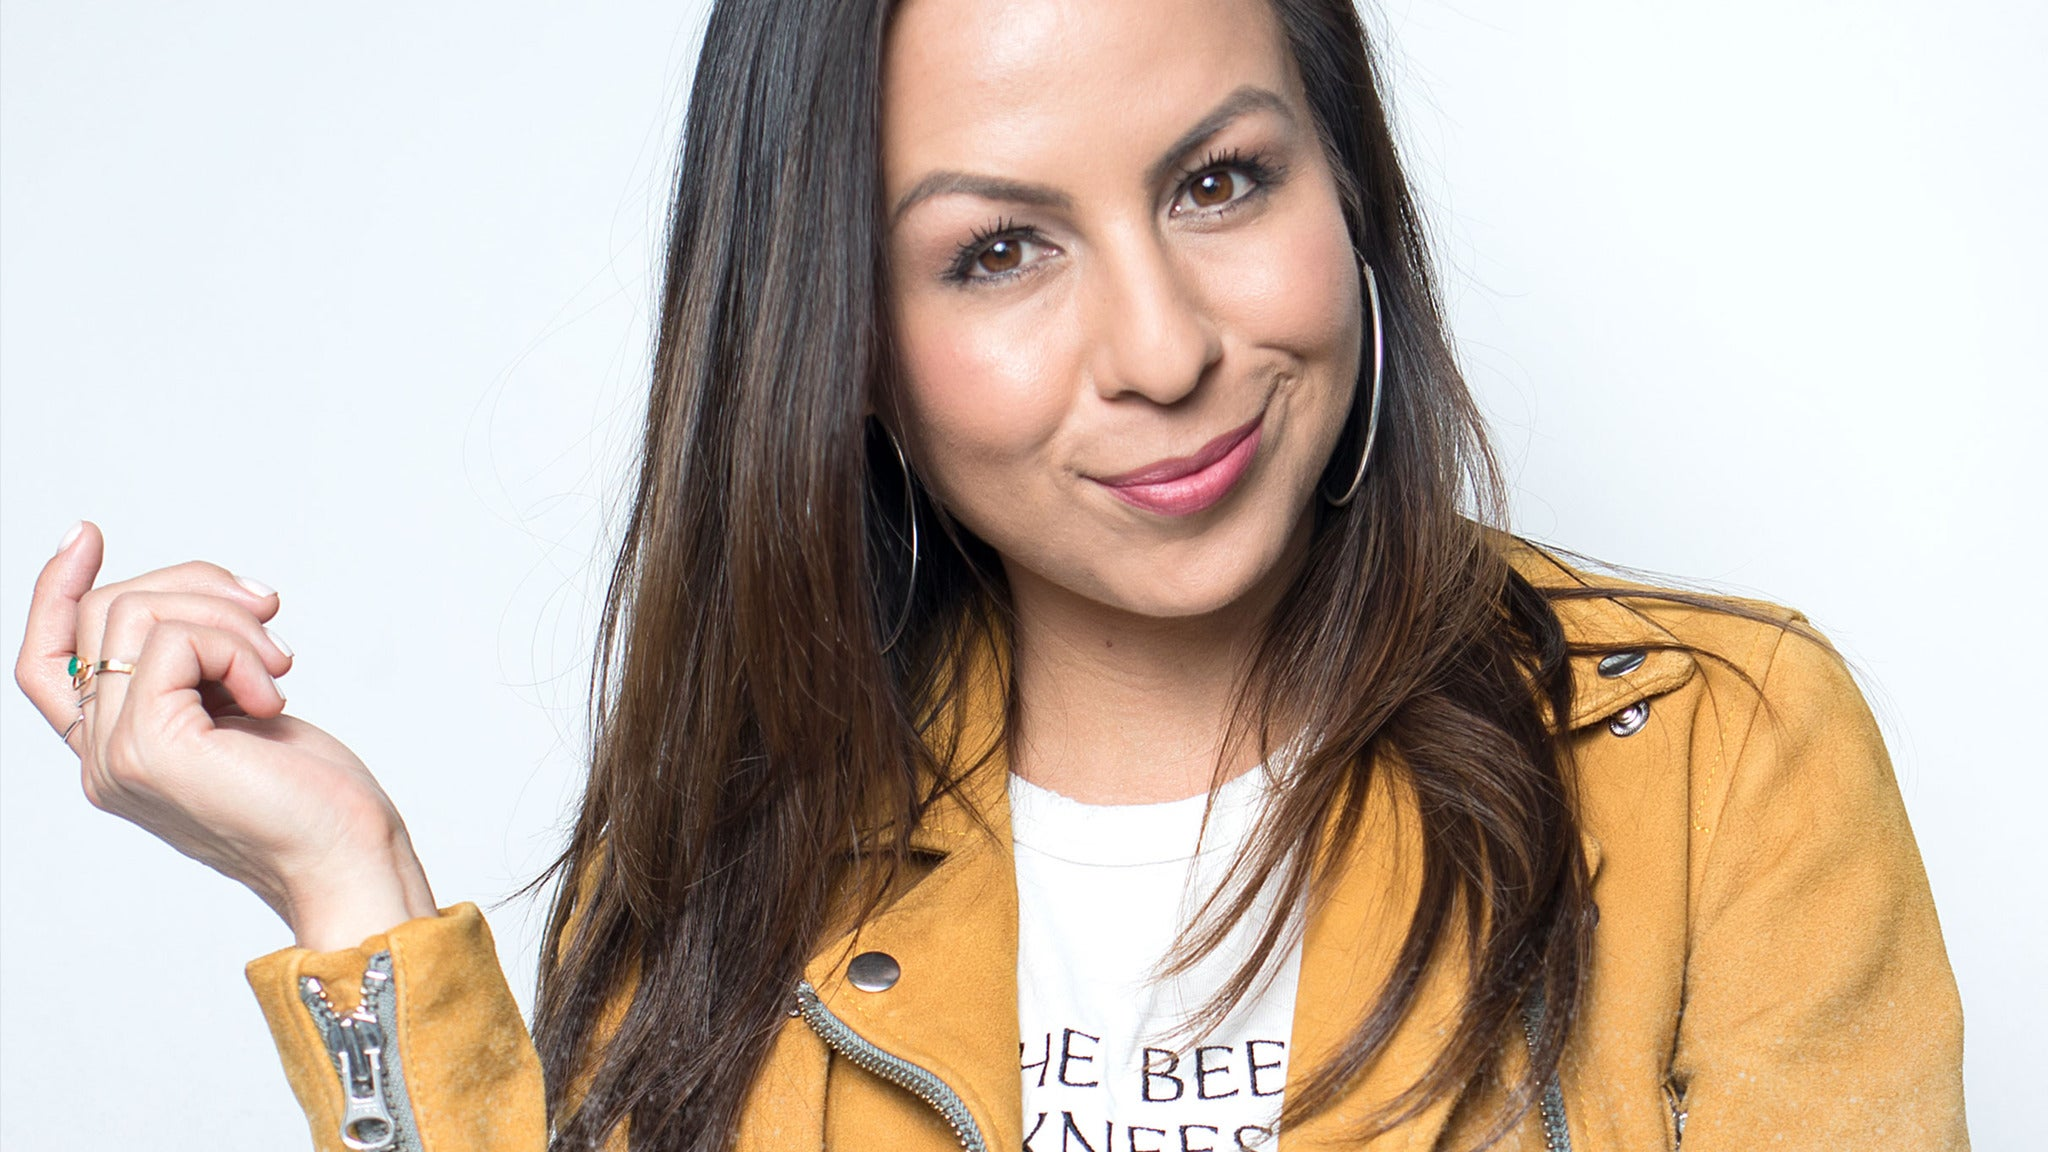 Anjelah Johnson at Chicago Improv